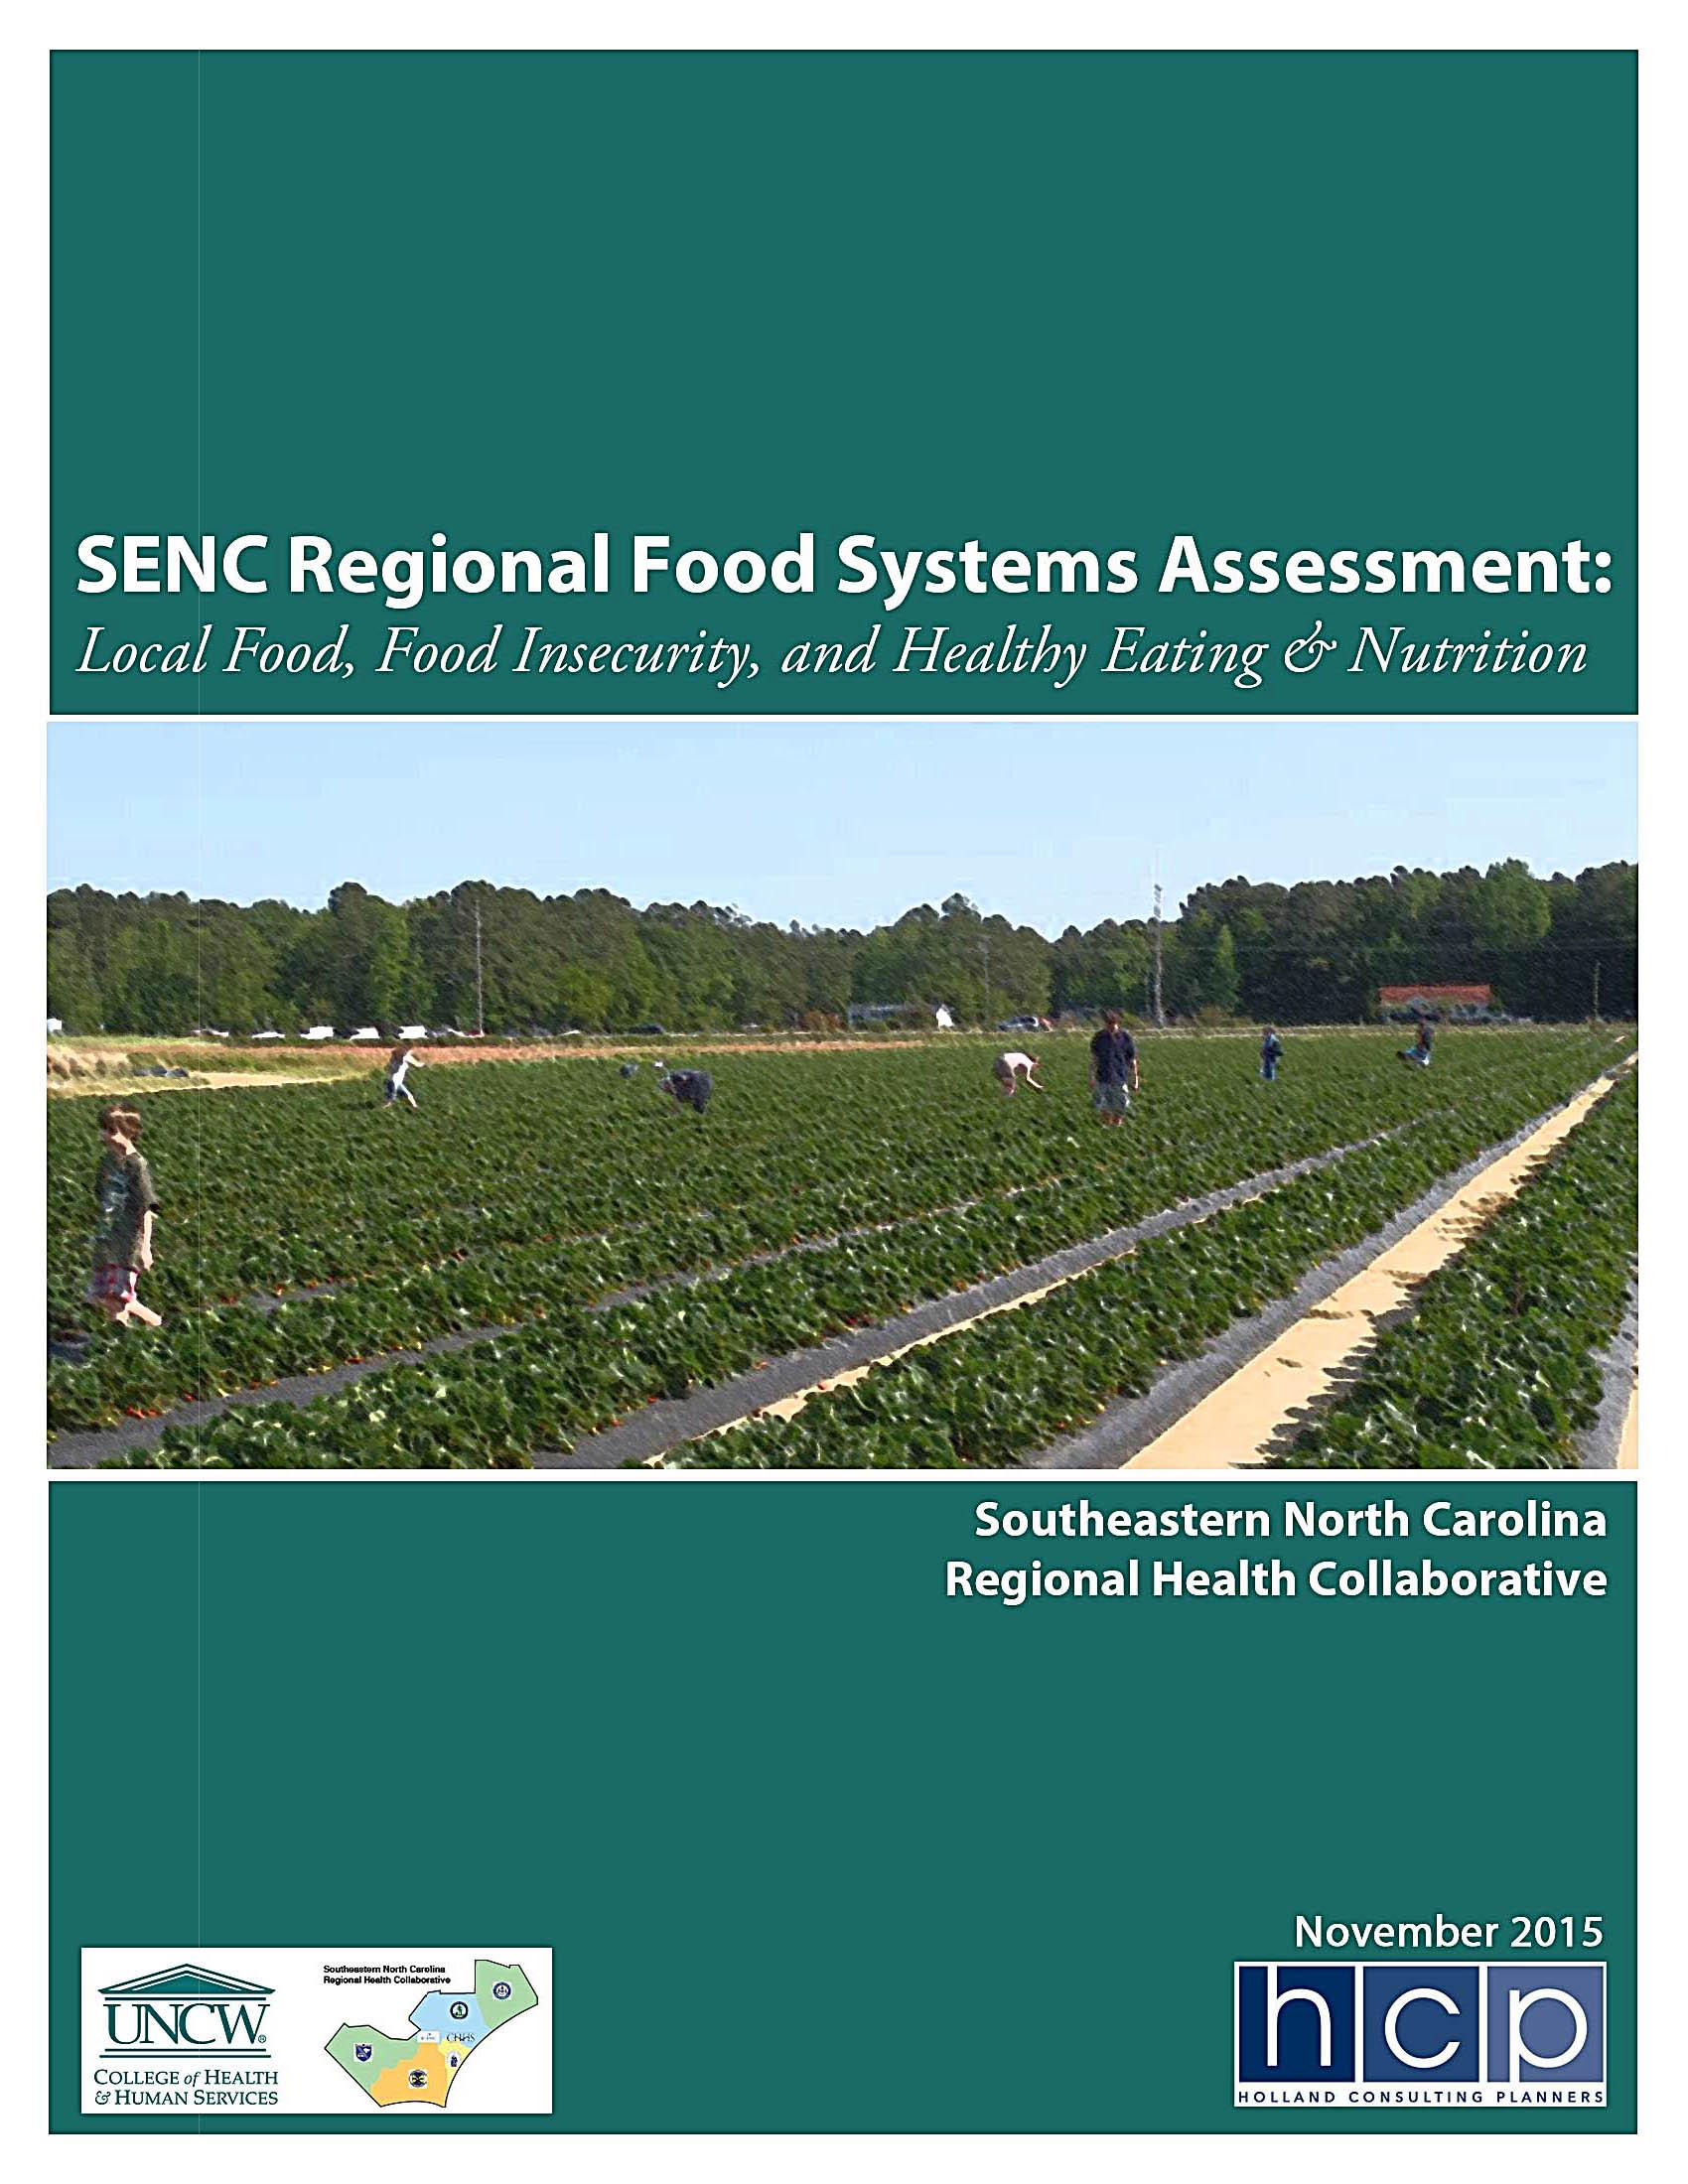 The SE NC Regional Food Systems Assessment examined how the public health in five counties were impacted by their local food system.